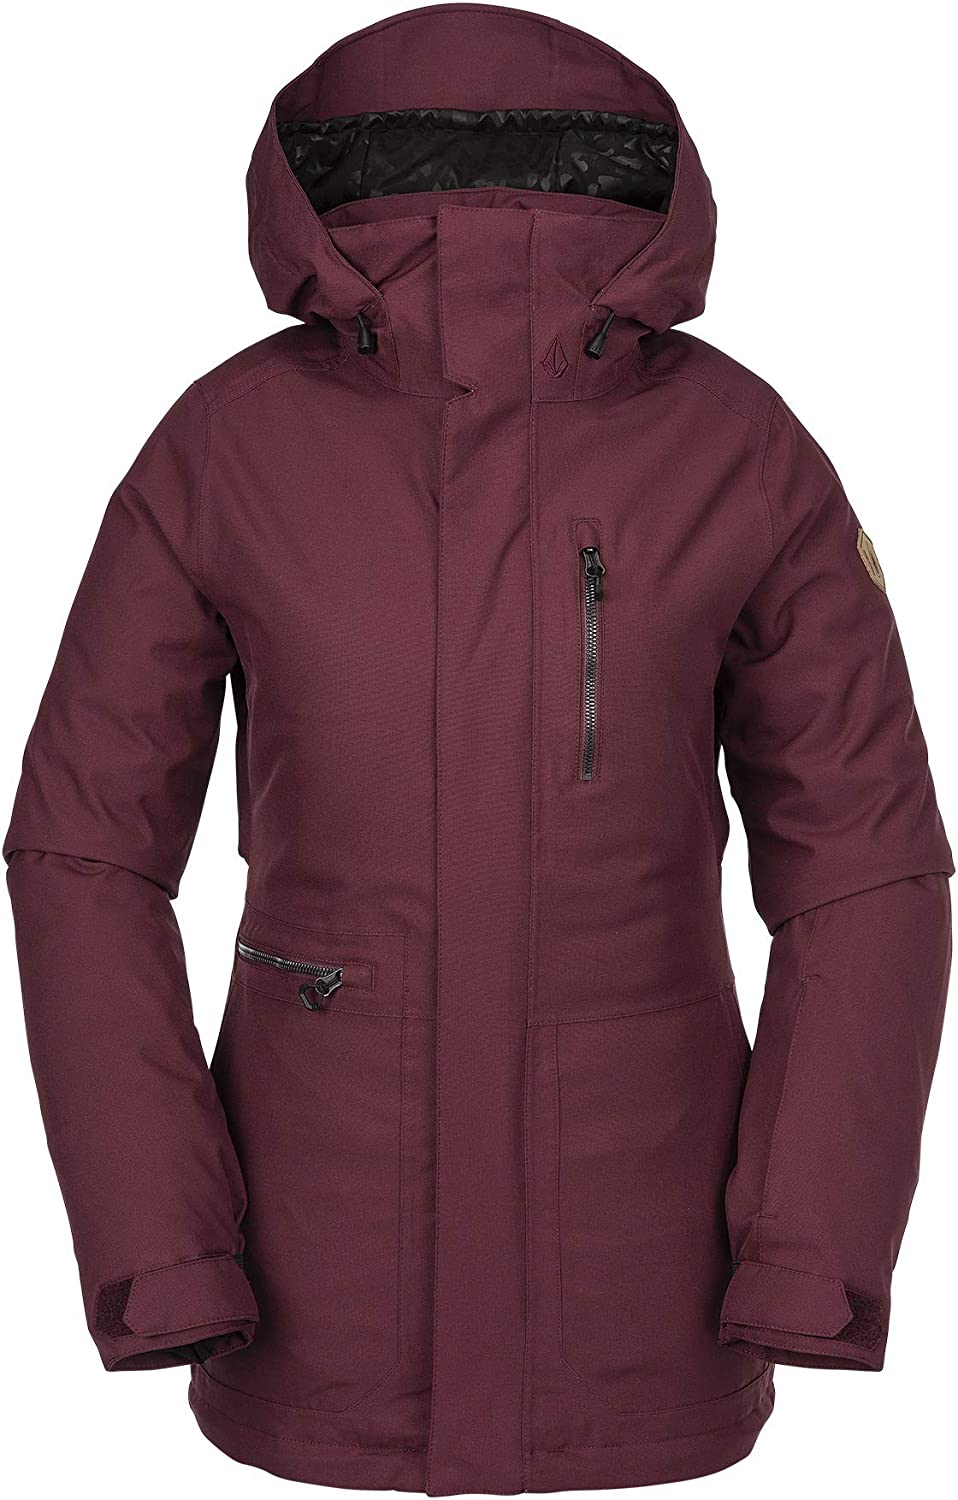 Volcom Women's Shelter Limited time cheap sale 3D Stretch Winter Insulated San Antonio Mall Ski Snowboard